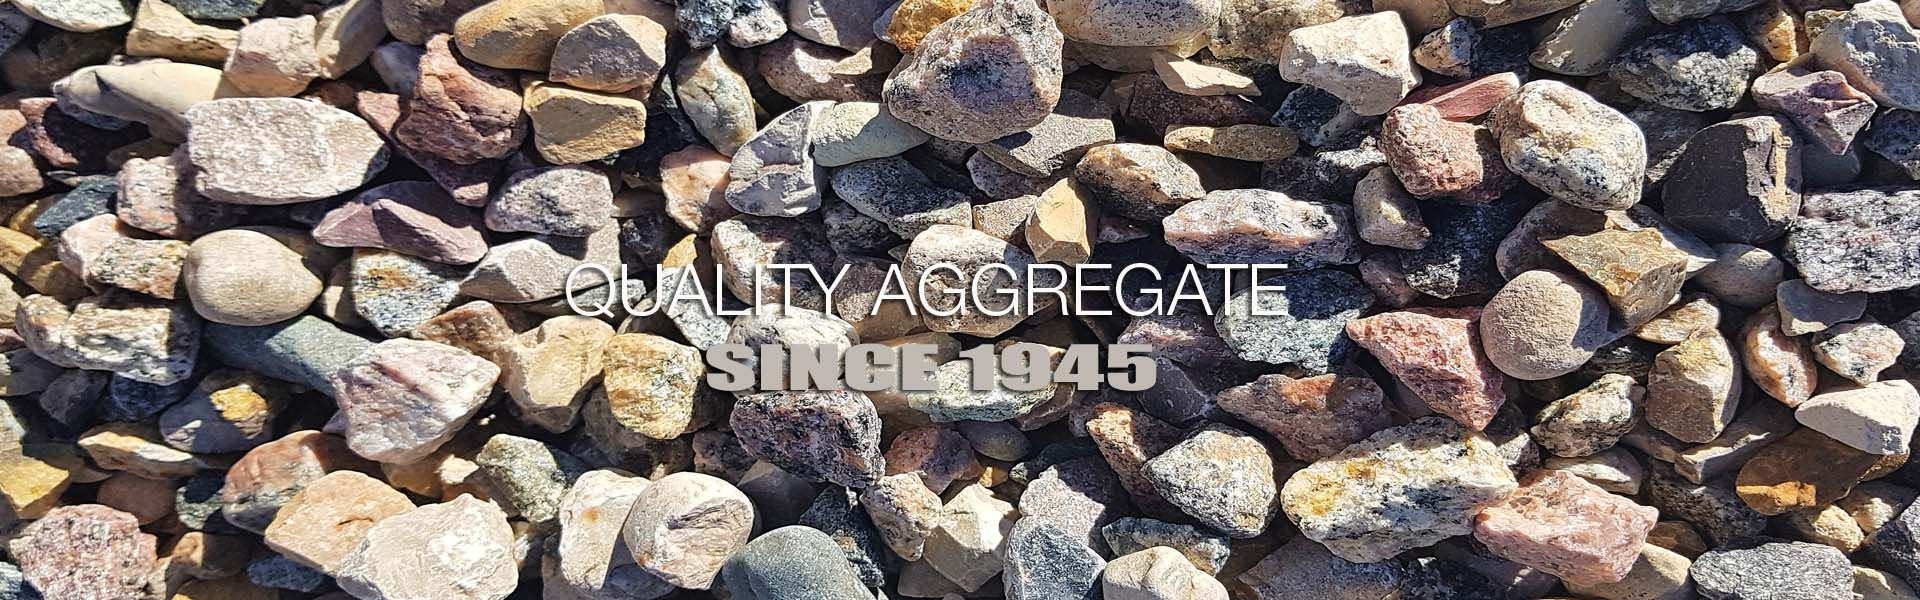 Quality Aggregate Since 1945 | aggregate production